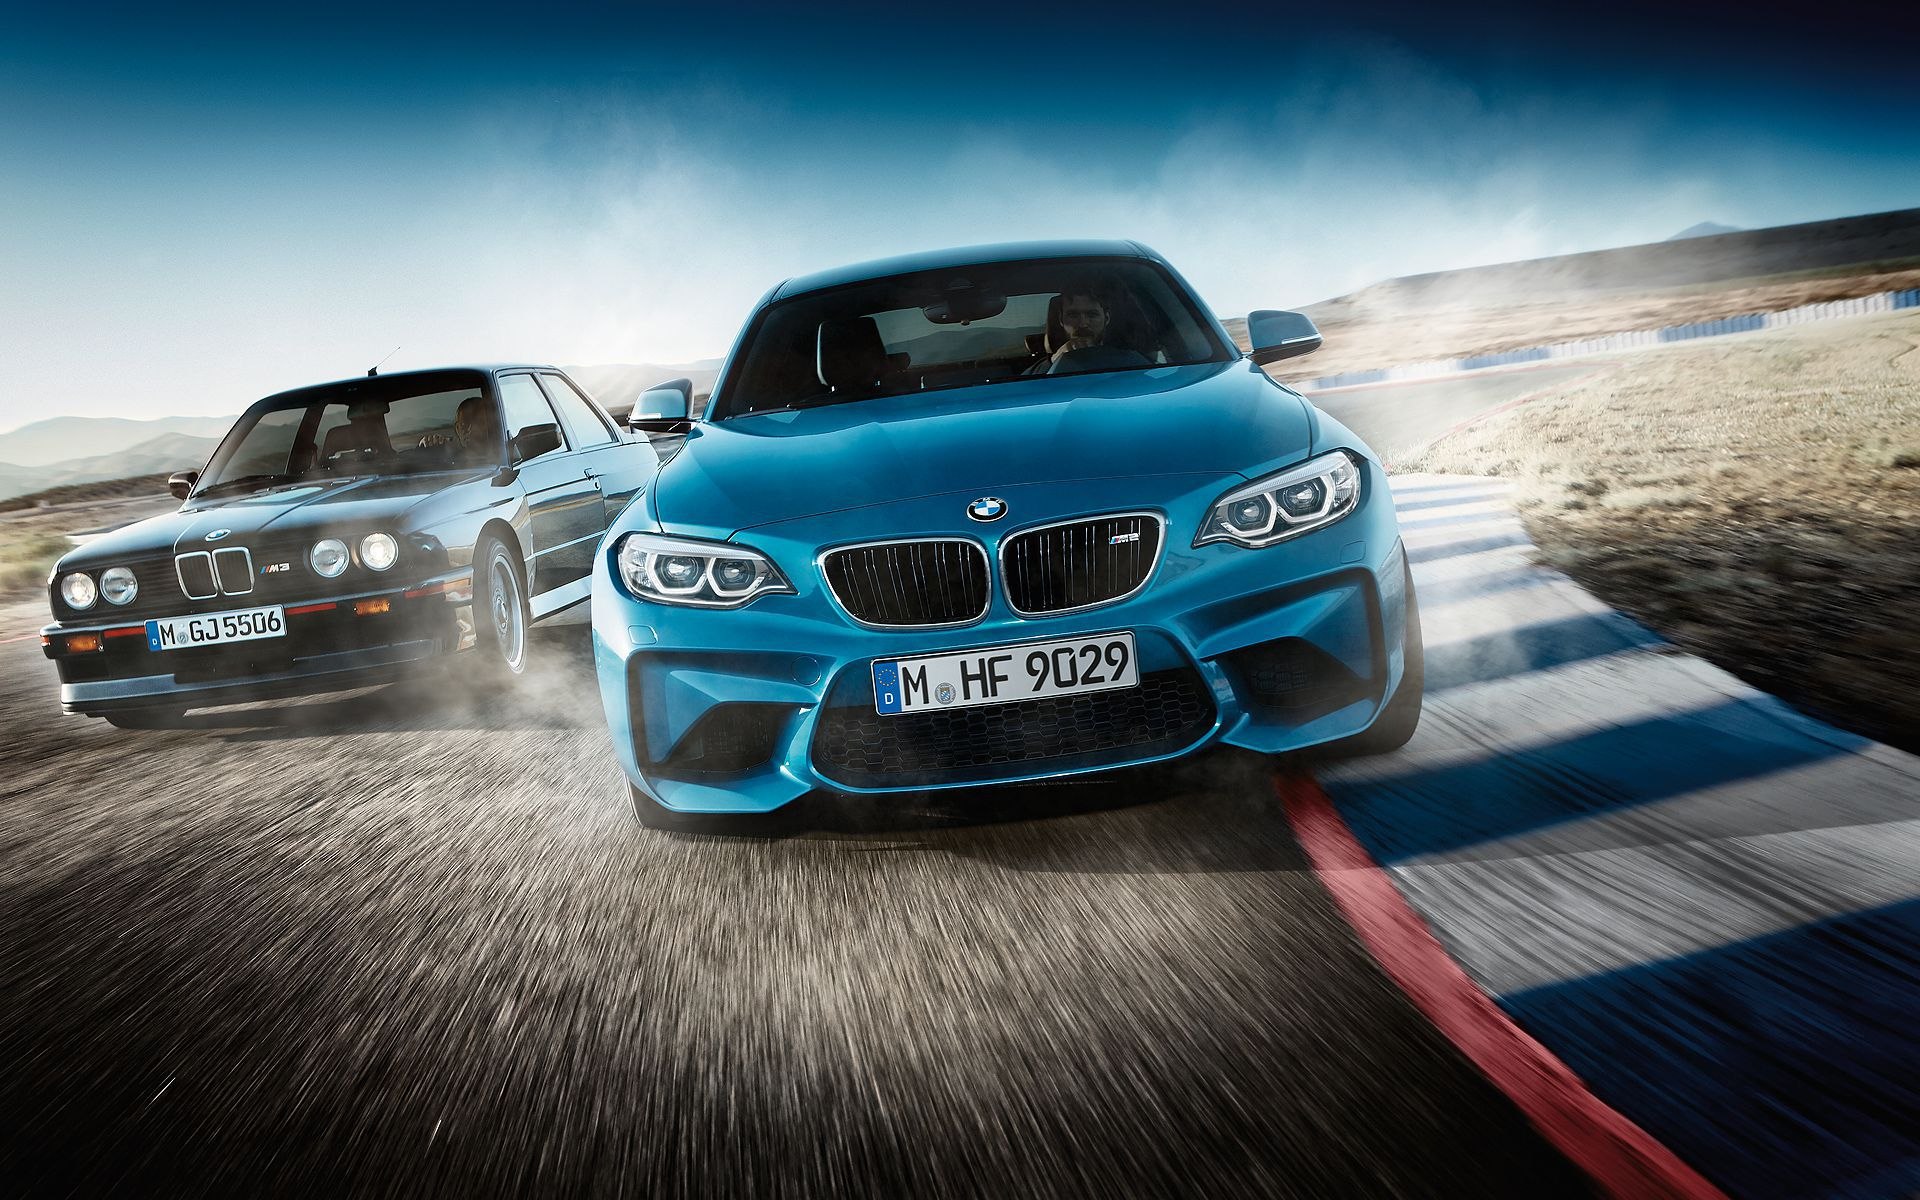 2018 blue BMW M2 LCI VS classic BMW M3 3 series